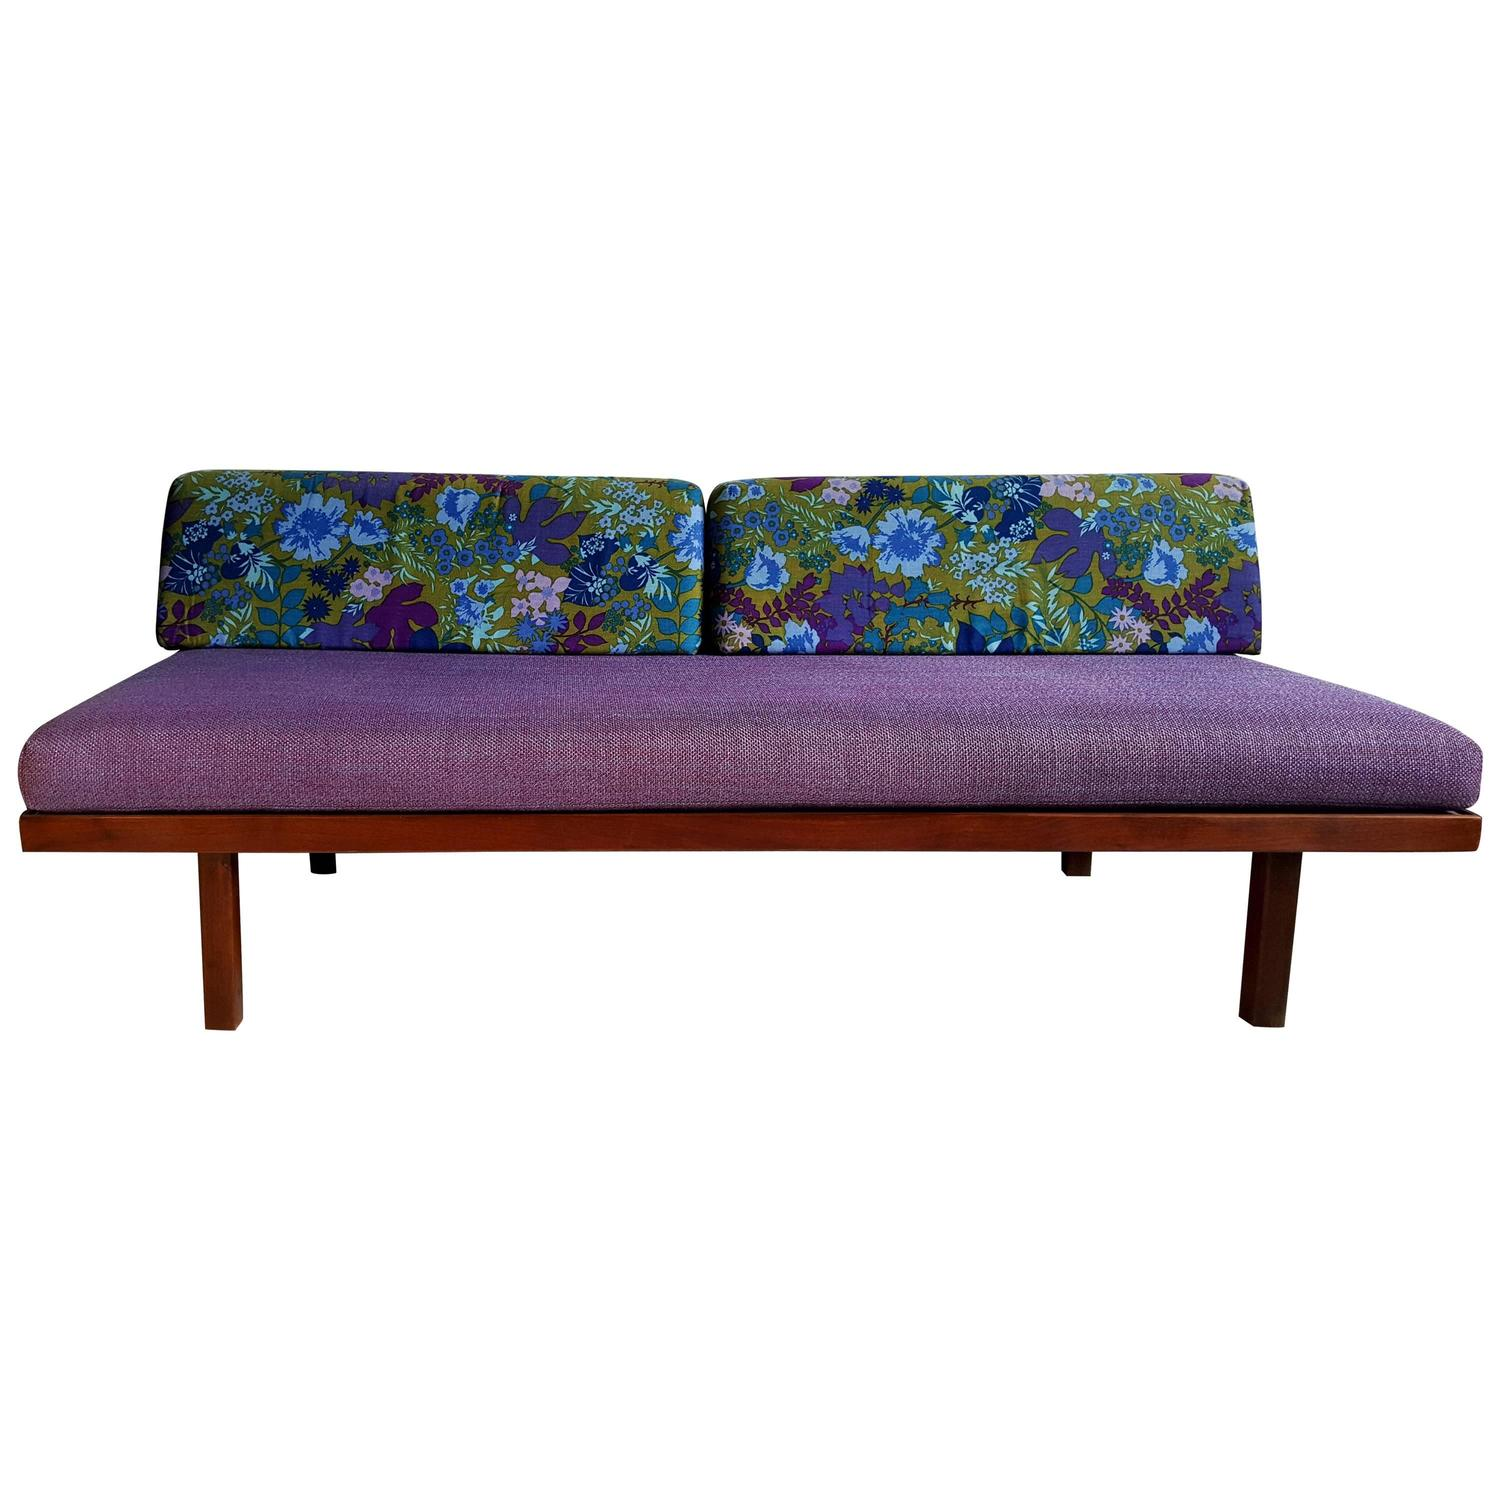 Mid century modern daybed sofa george nelson inspired for for Mid century daybed sofa